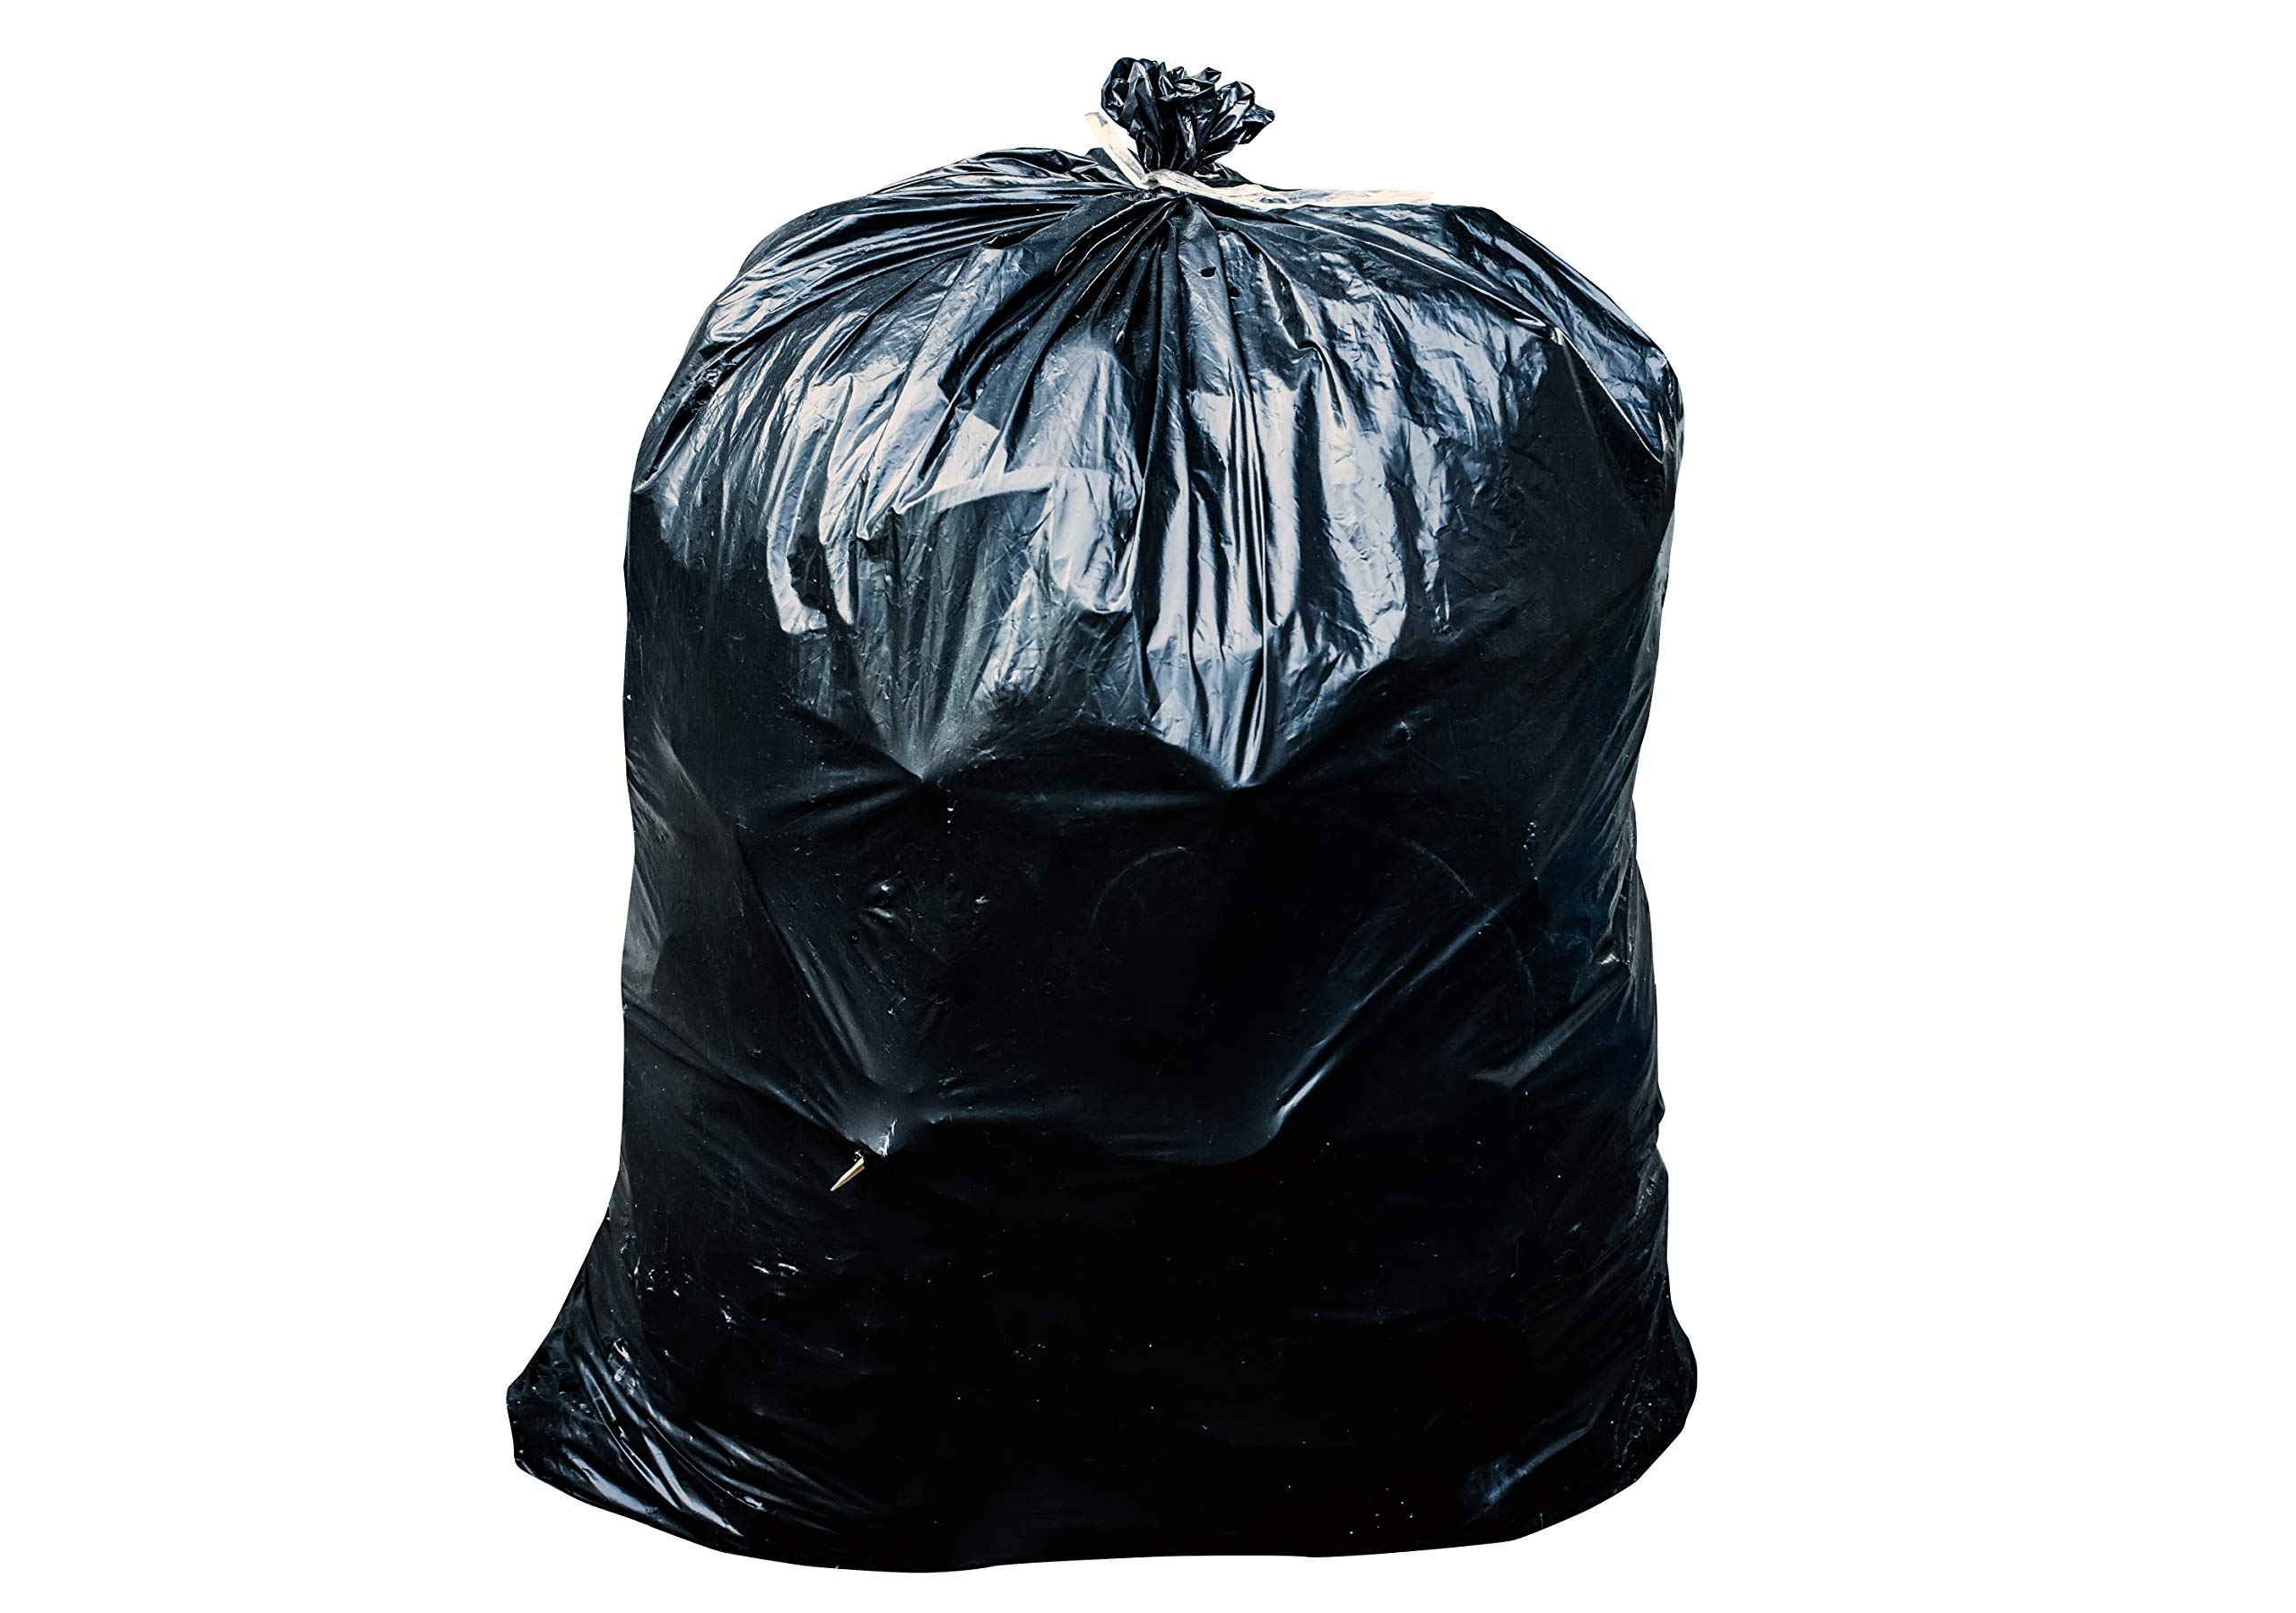 Toughbag Rubbermaid Compatible 44 Gallon Trash Bag 100 Garbage Bags (Black)